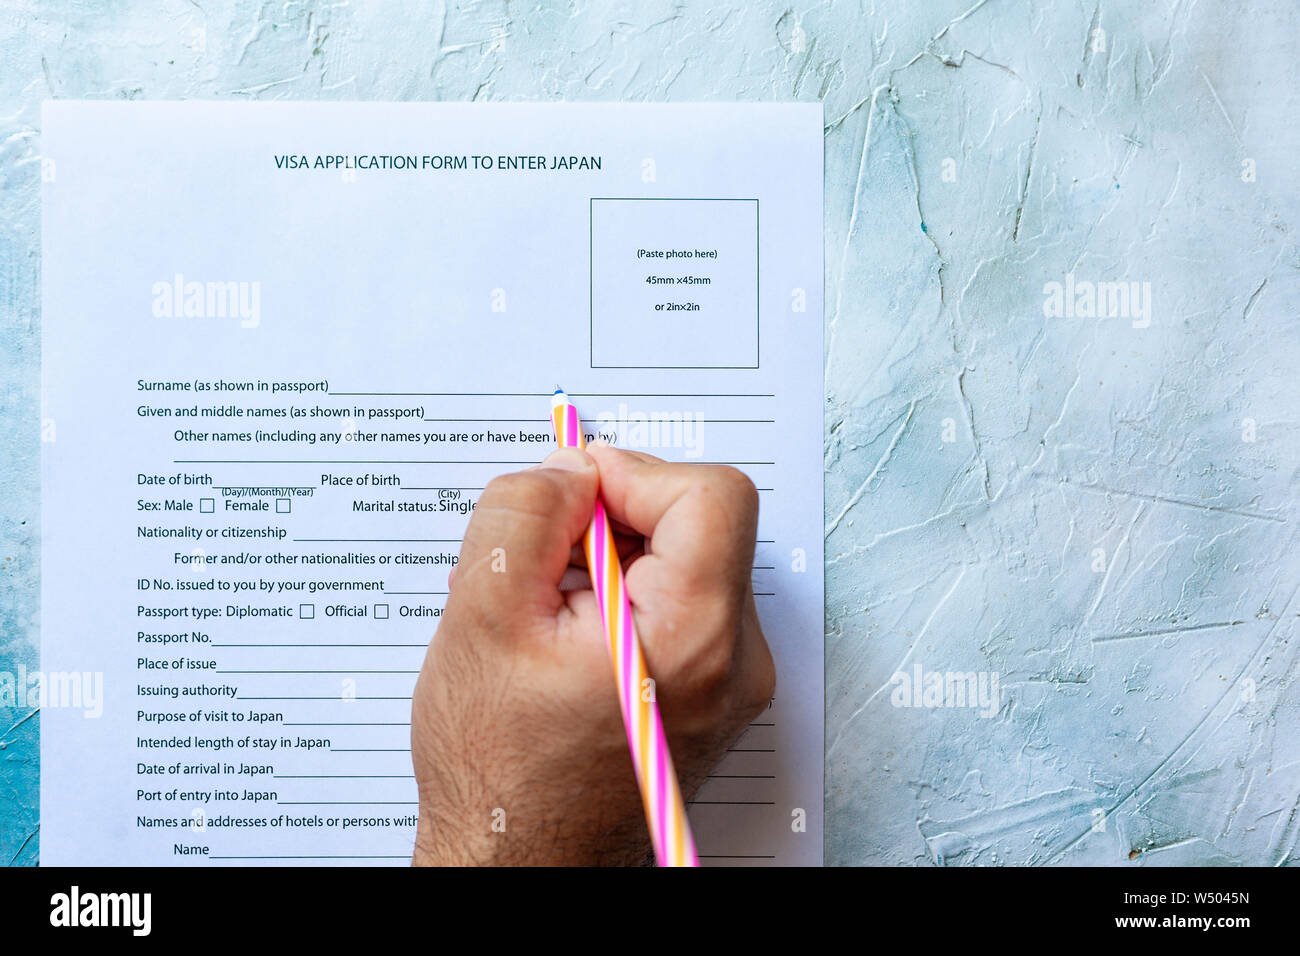 The person filling the Visa application form to enter Japan. Stock Photo